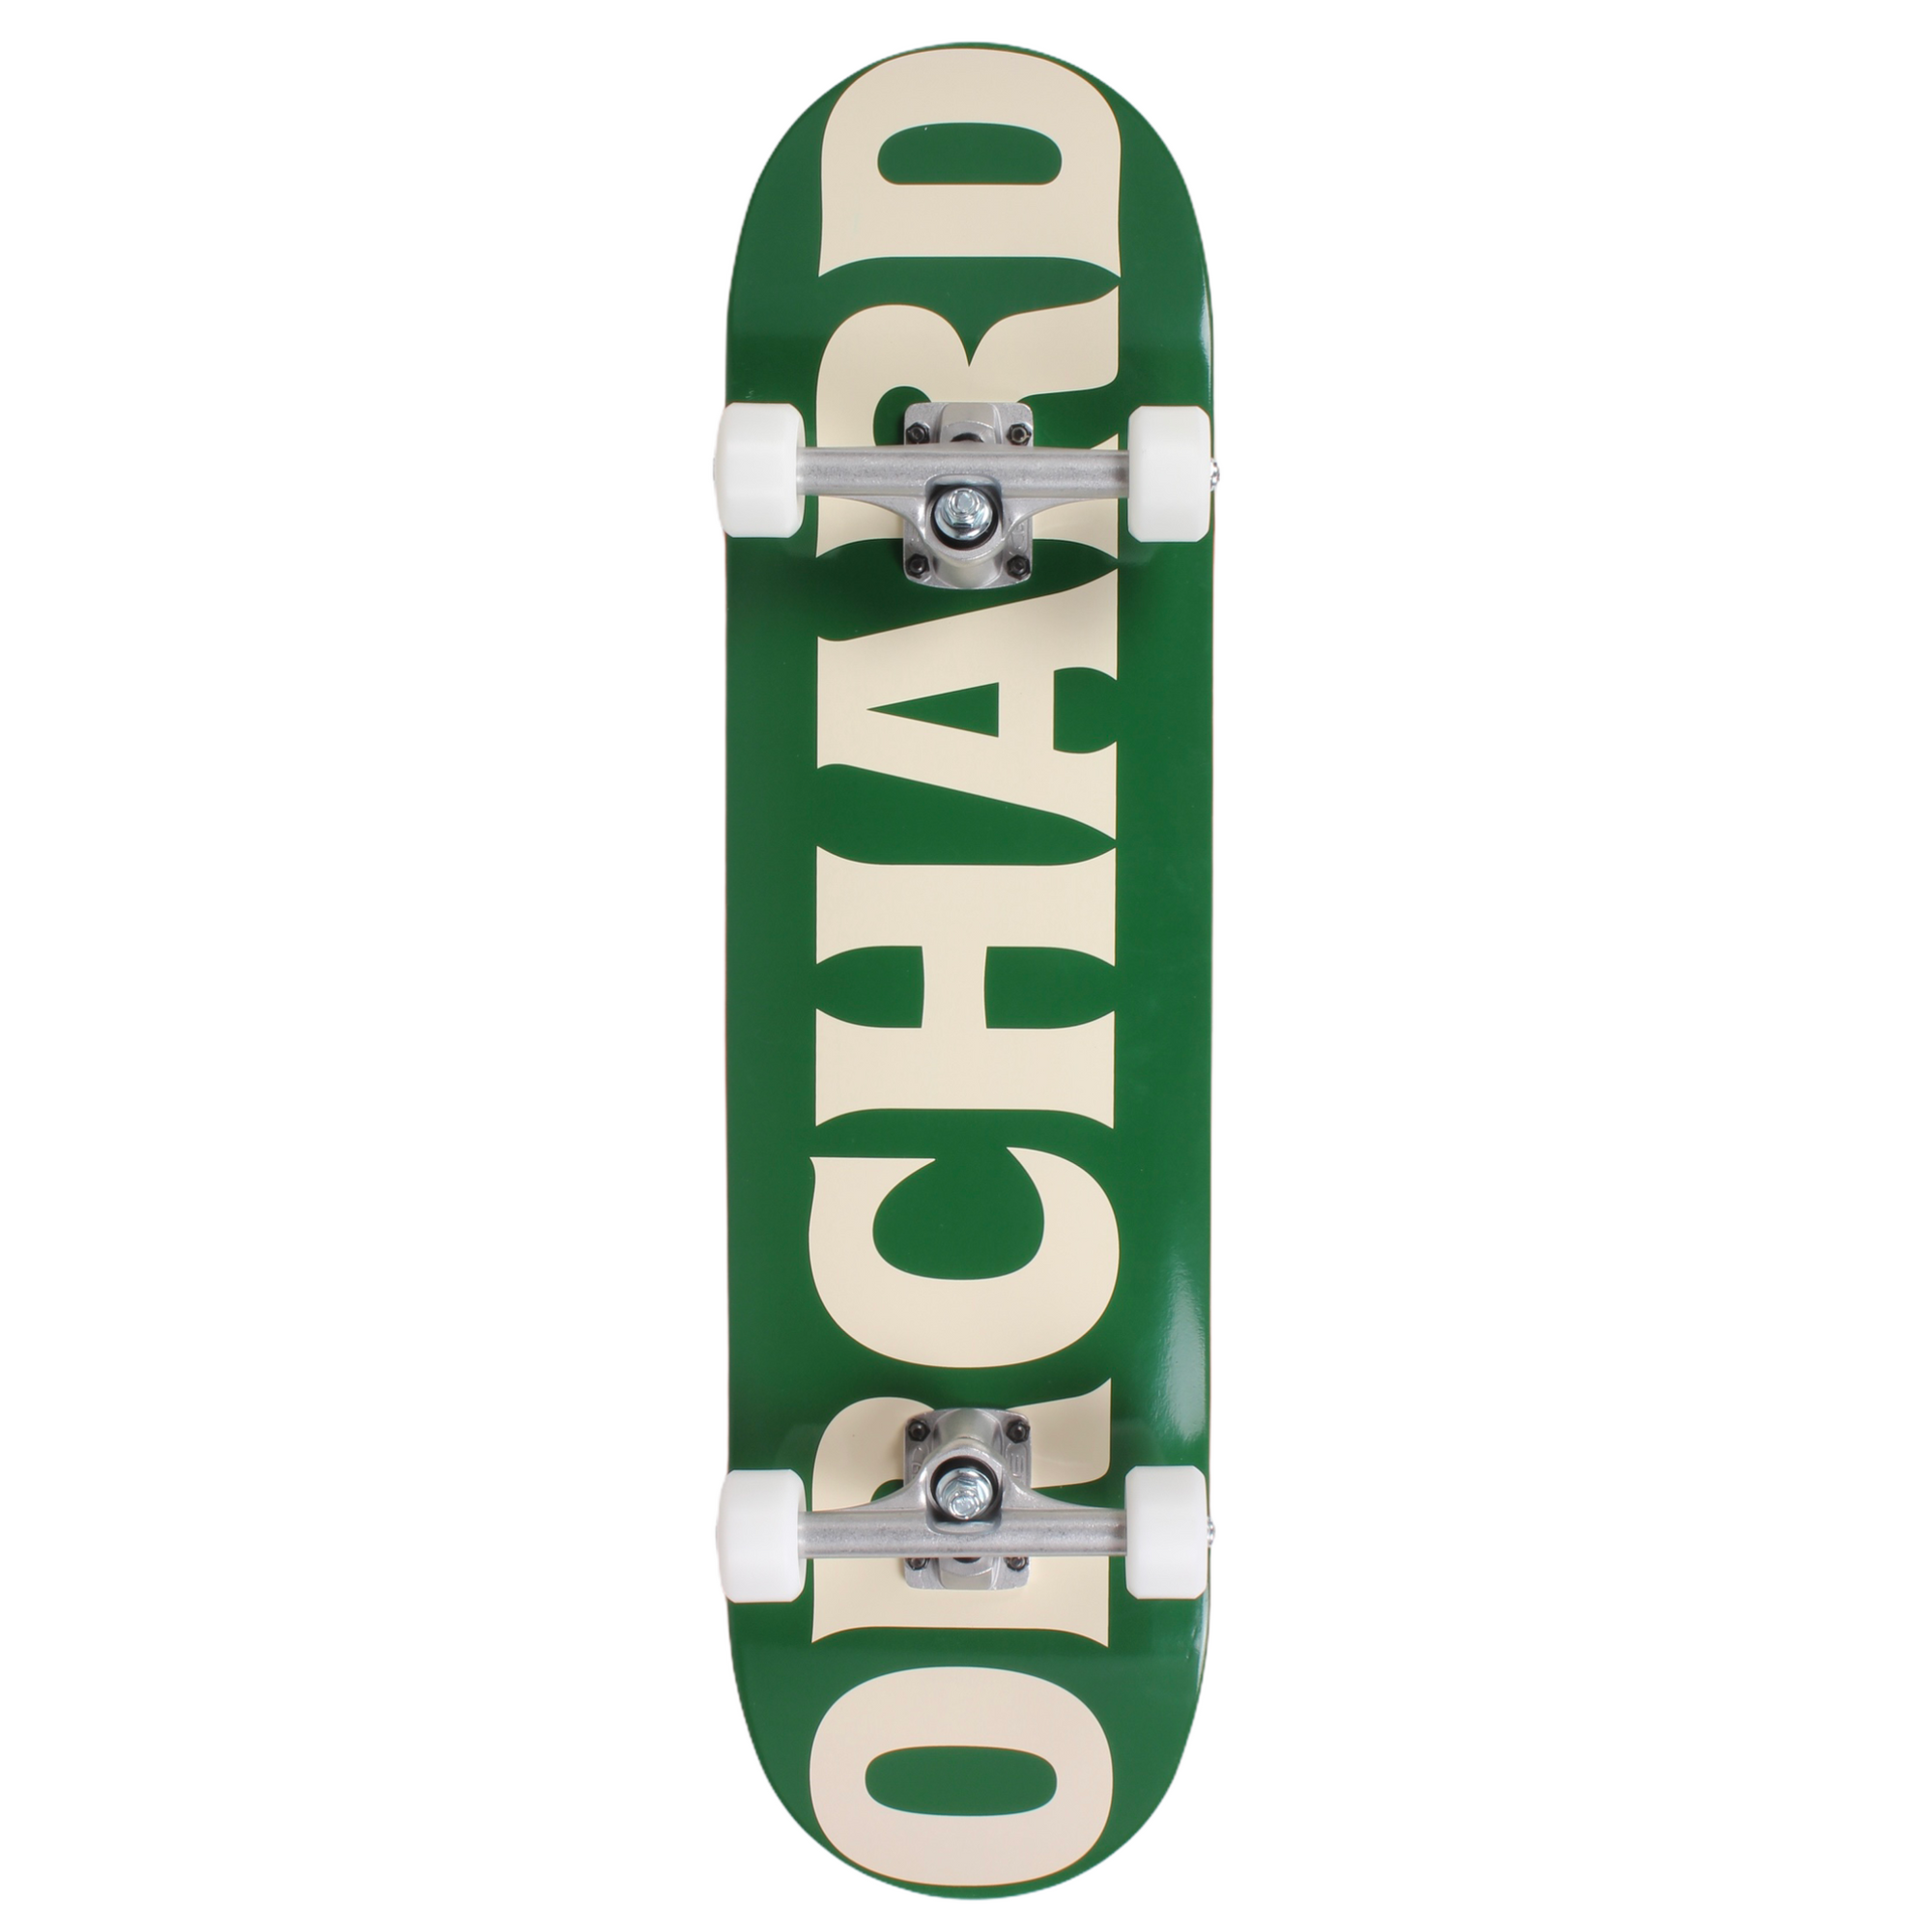 "Orchard Text Logo Hybrid Complete Skateboard 8.3"" (With Free Skate Tool)"